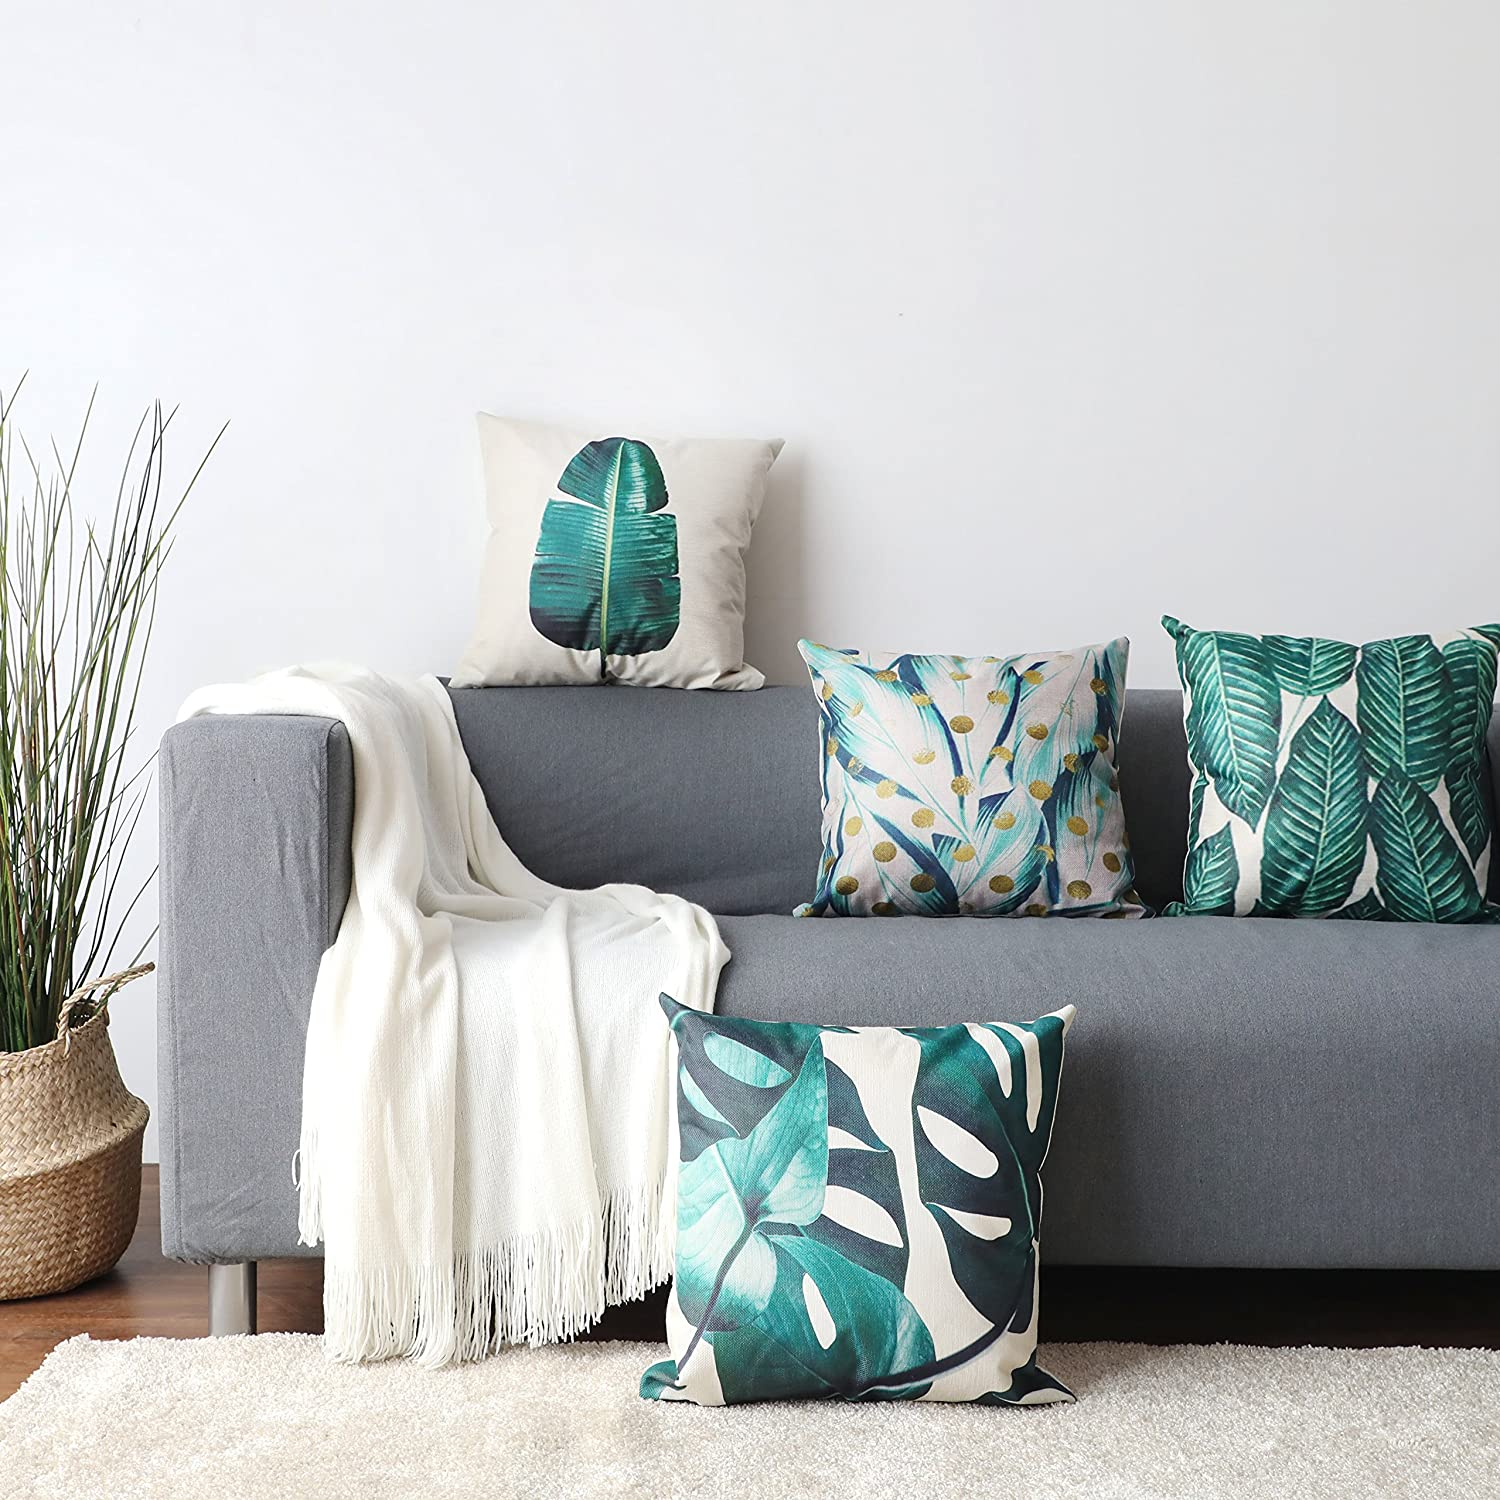 Green ALPHA HOME Decorative Throw Pillow Covers Set of 4 Cushion Covers 18 x 18 inch